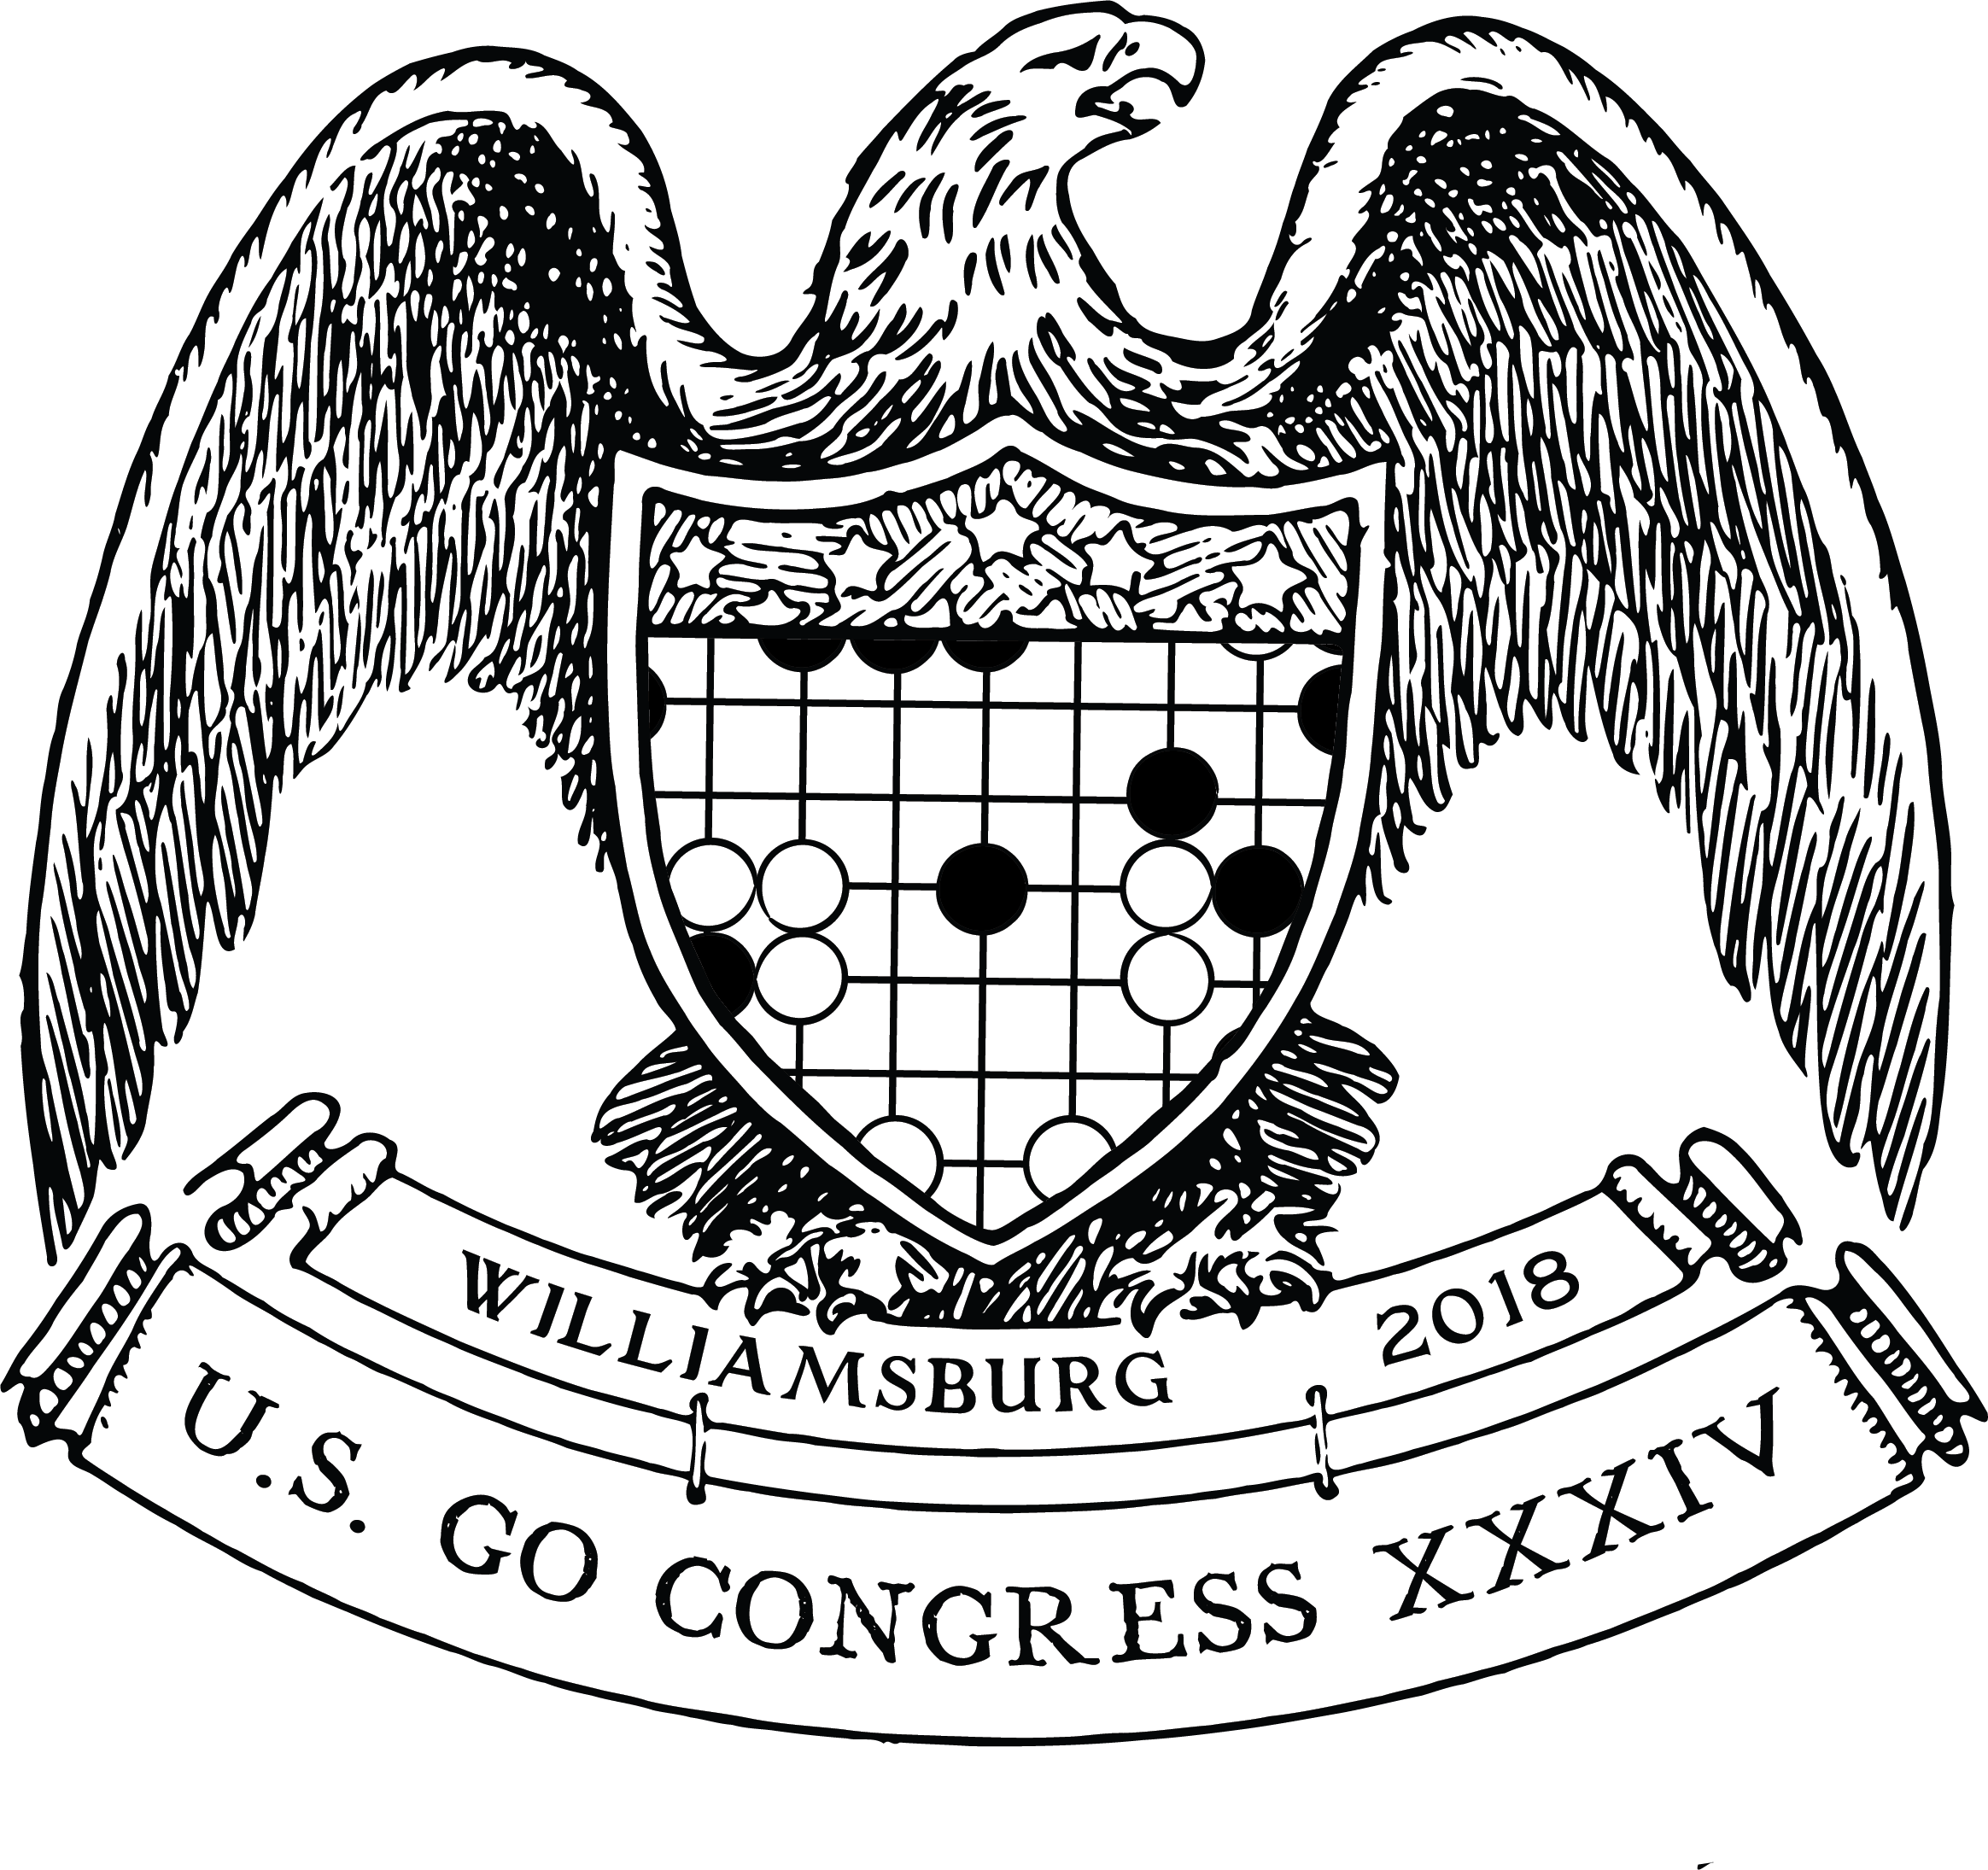 House and senate clipart clipart black and white library Congress Drawing at GetDrawings.com | Free for personal use Congress ... clipart black and white library